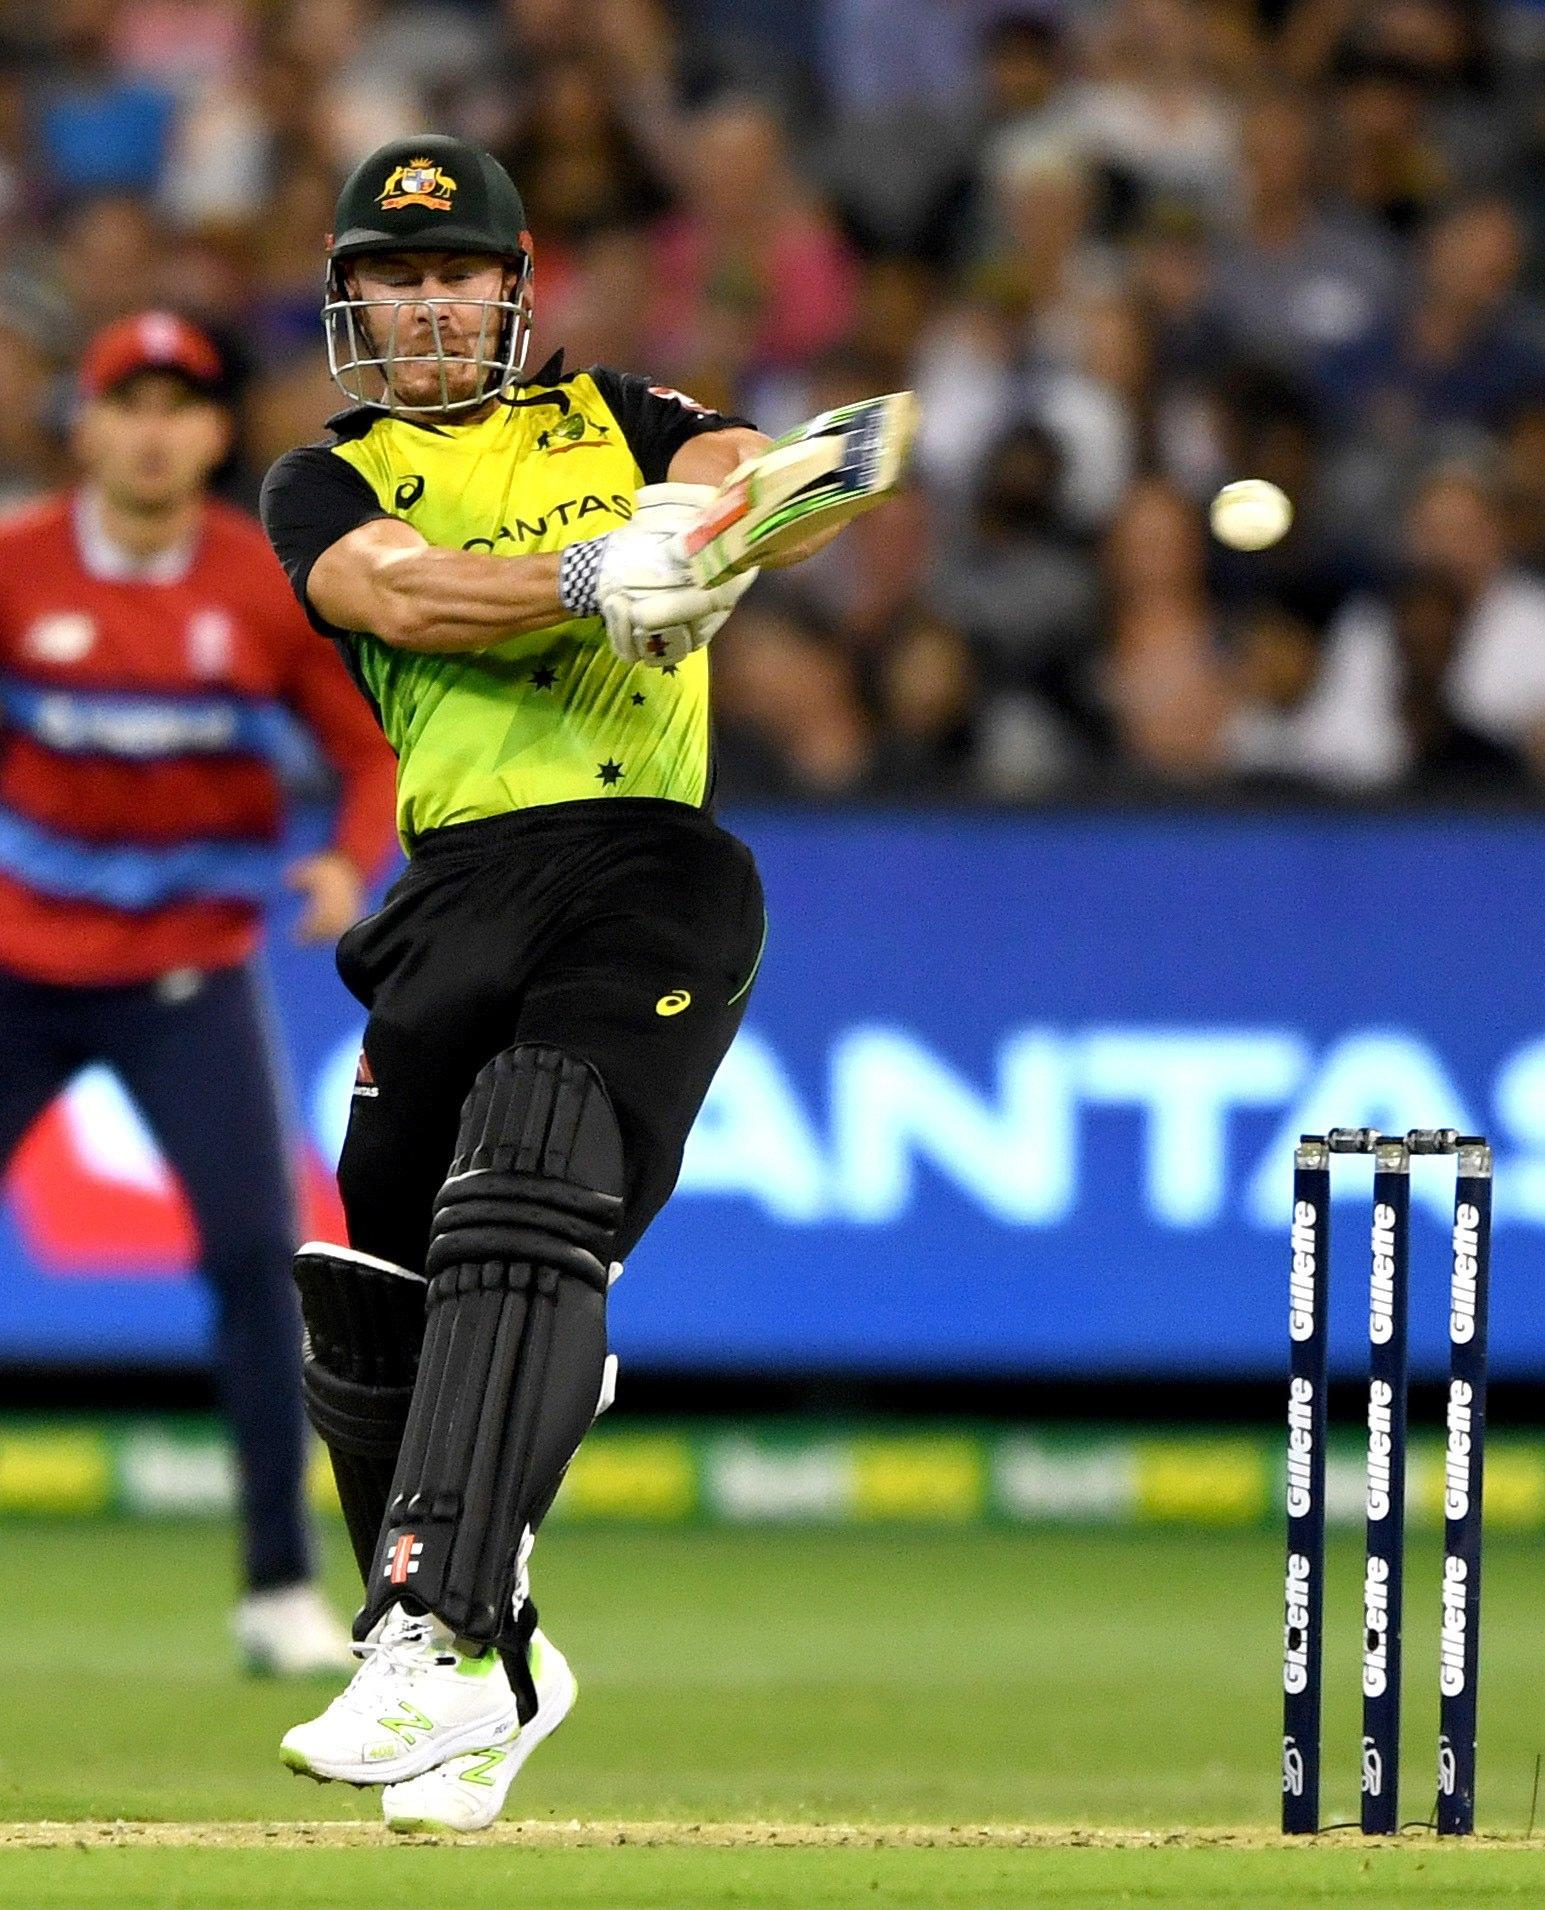 Chris Lynn saw Australia get off to a quick start after David Warner's departure